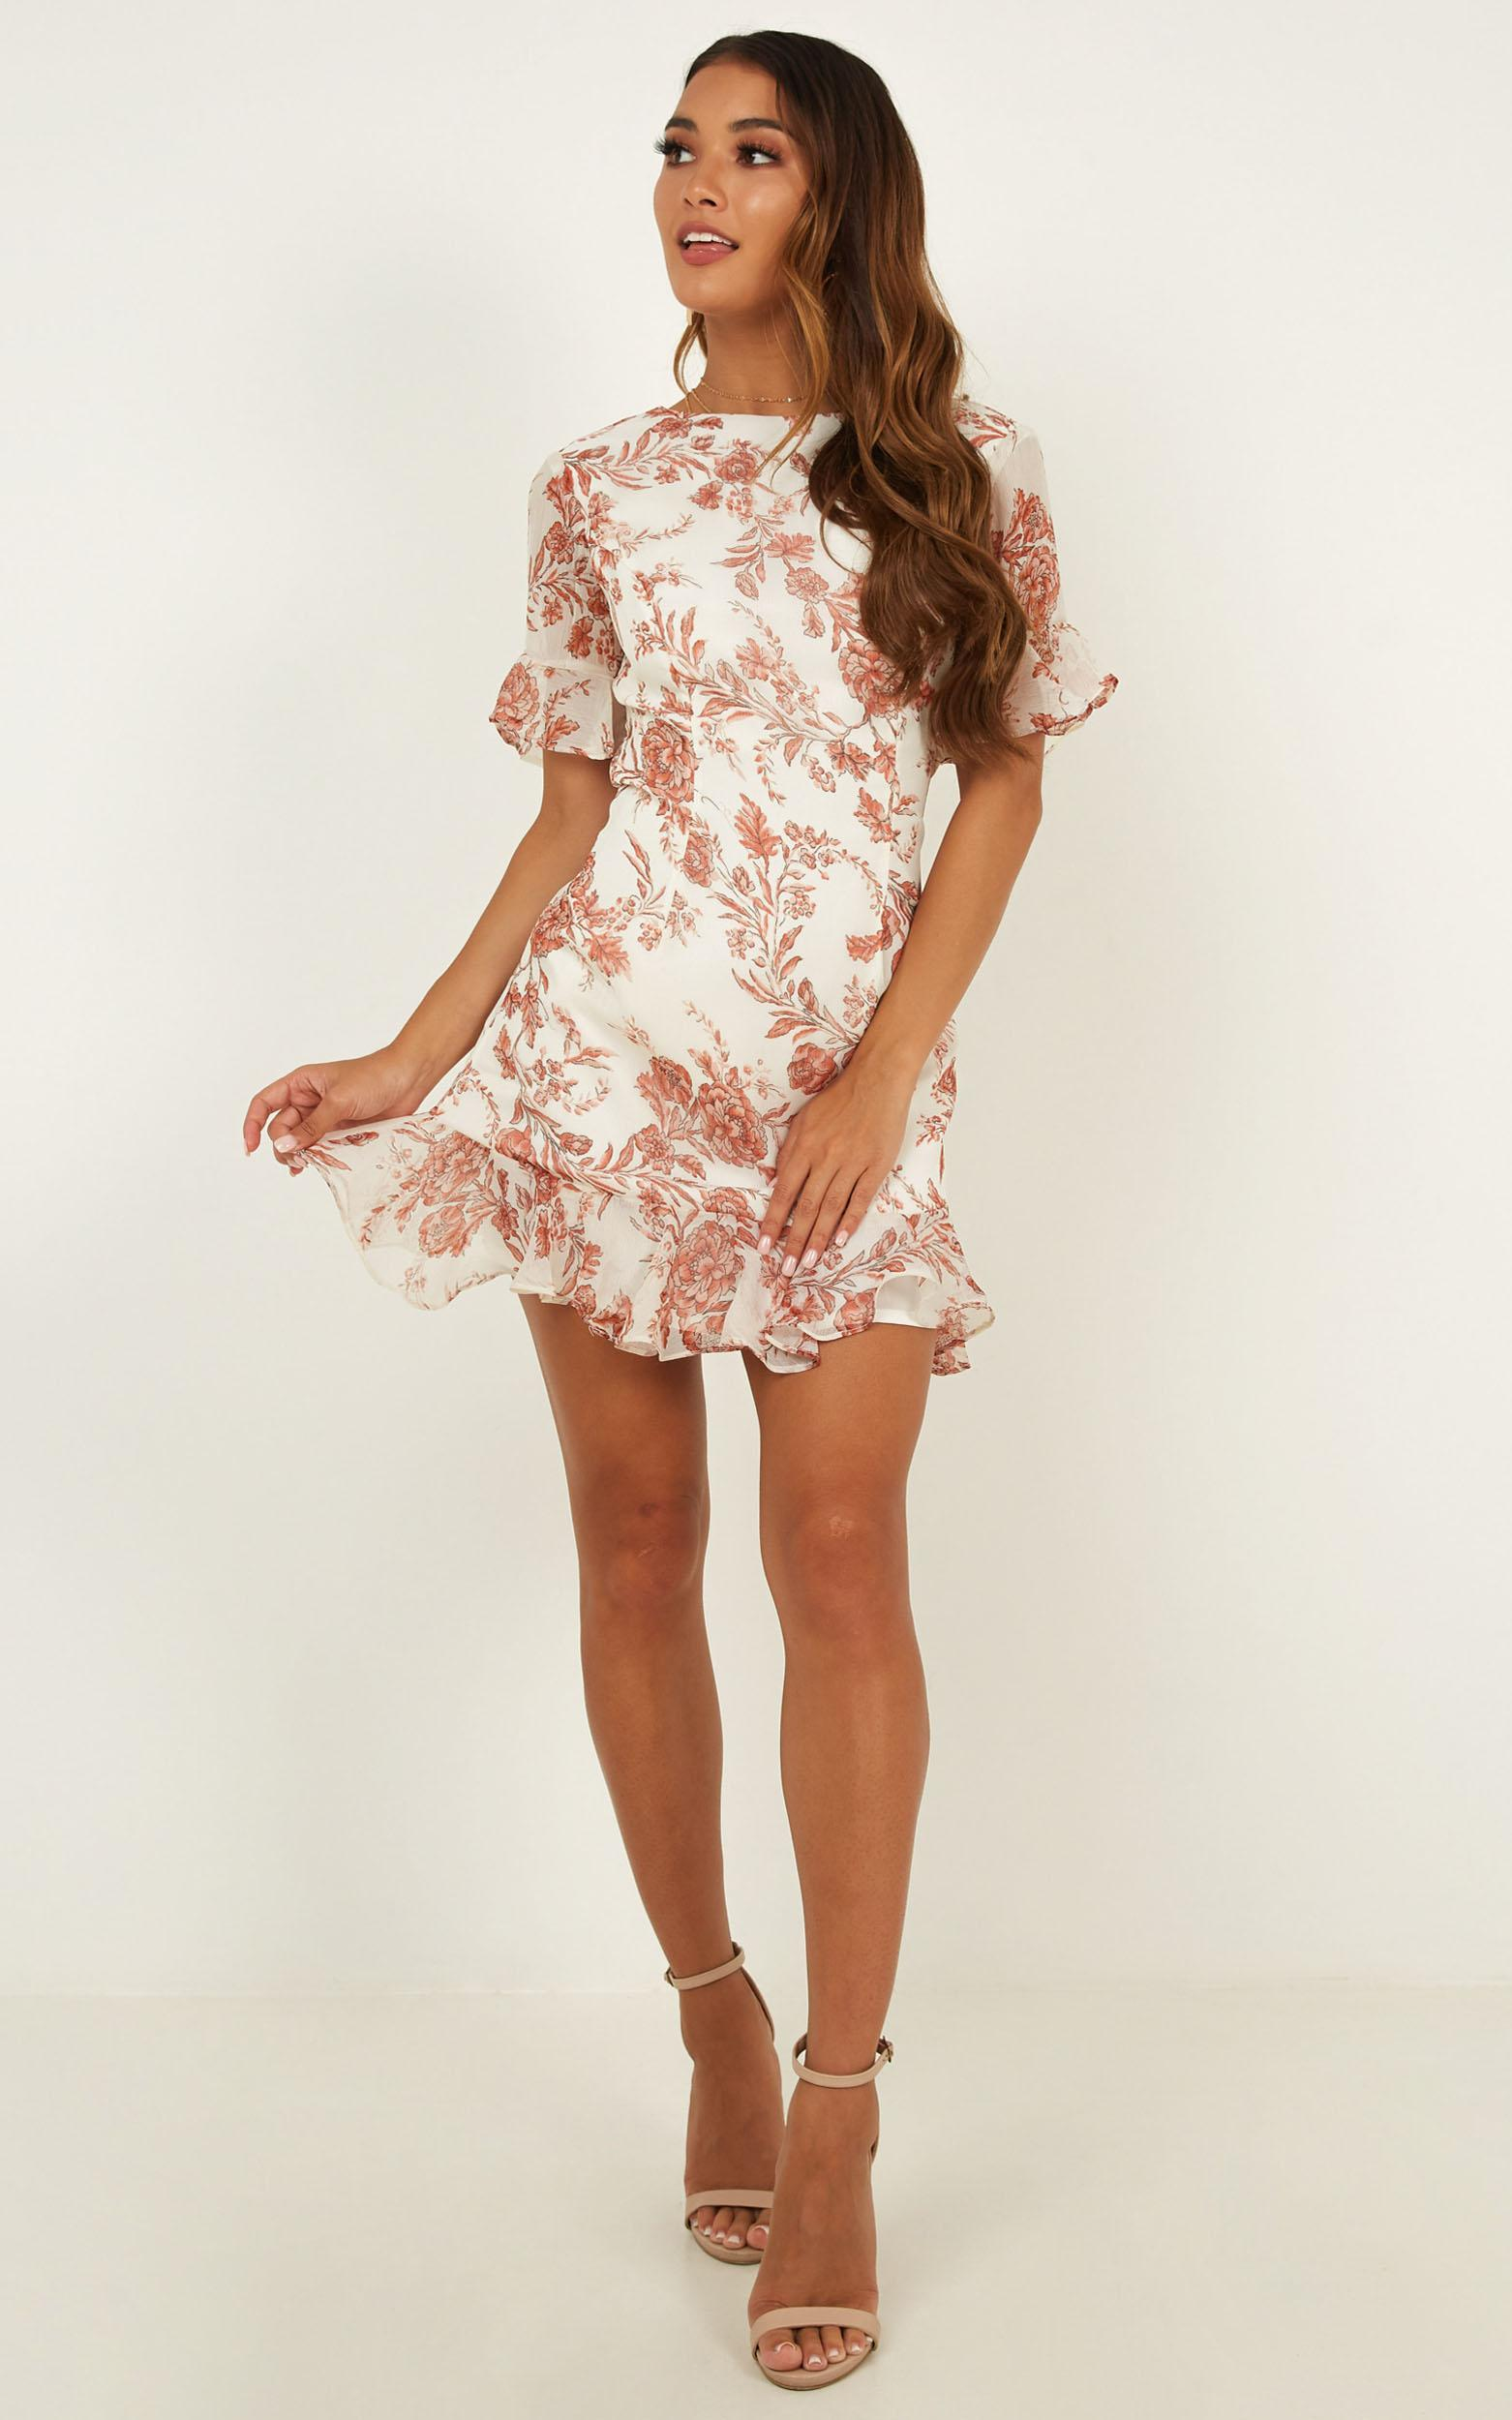 Nice Moves Dress In Cream Floral - 14 (XL), Cream, hi-res image number null